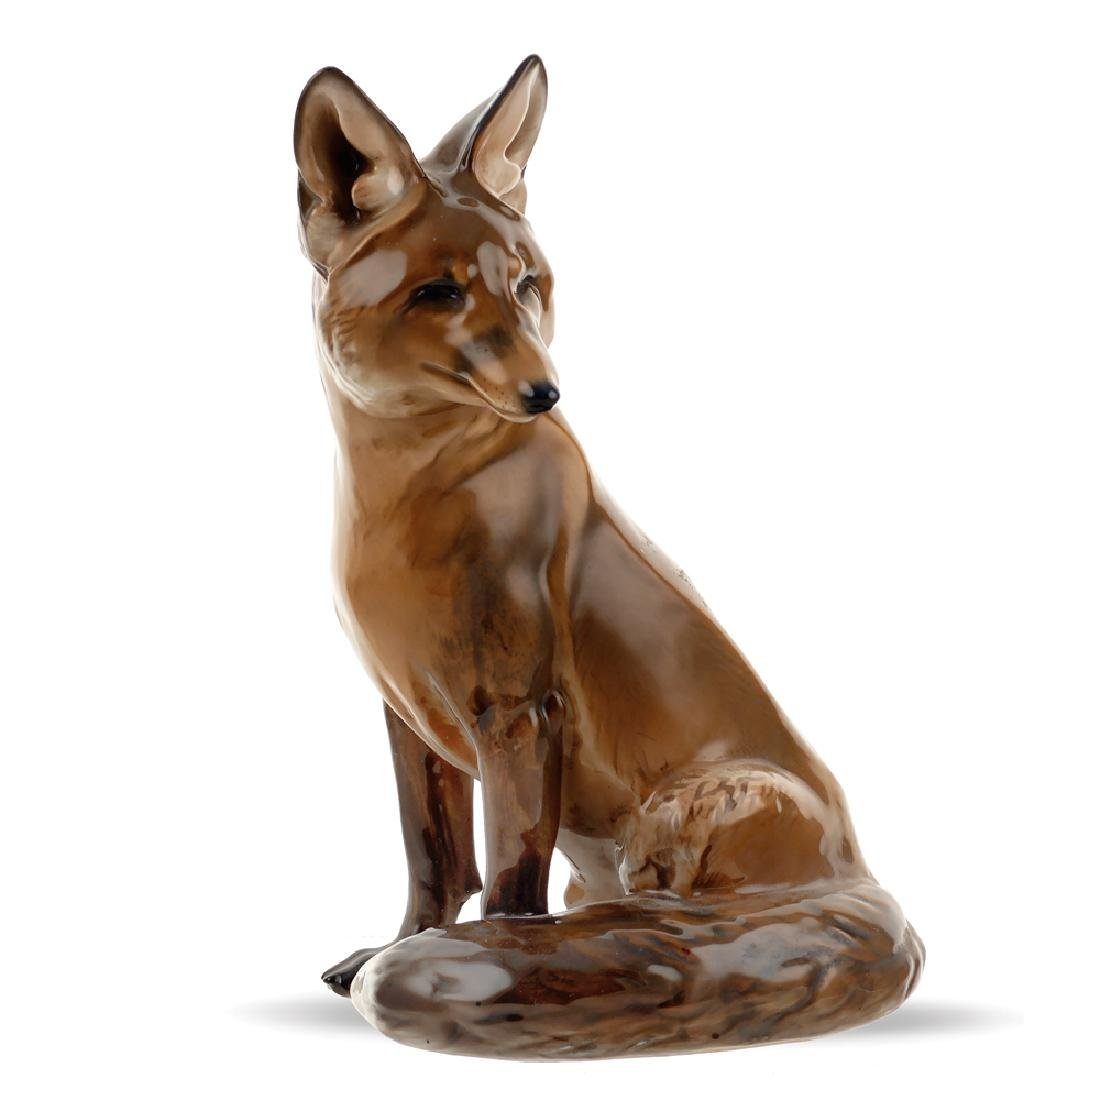 A porcelain fox Germany 20th century 24x16x11 cm.